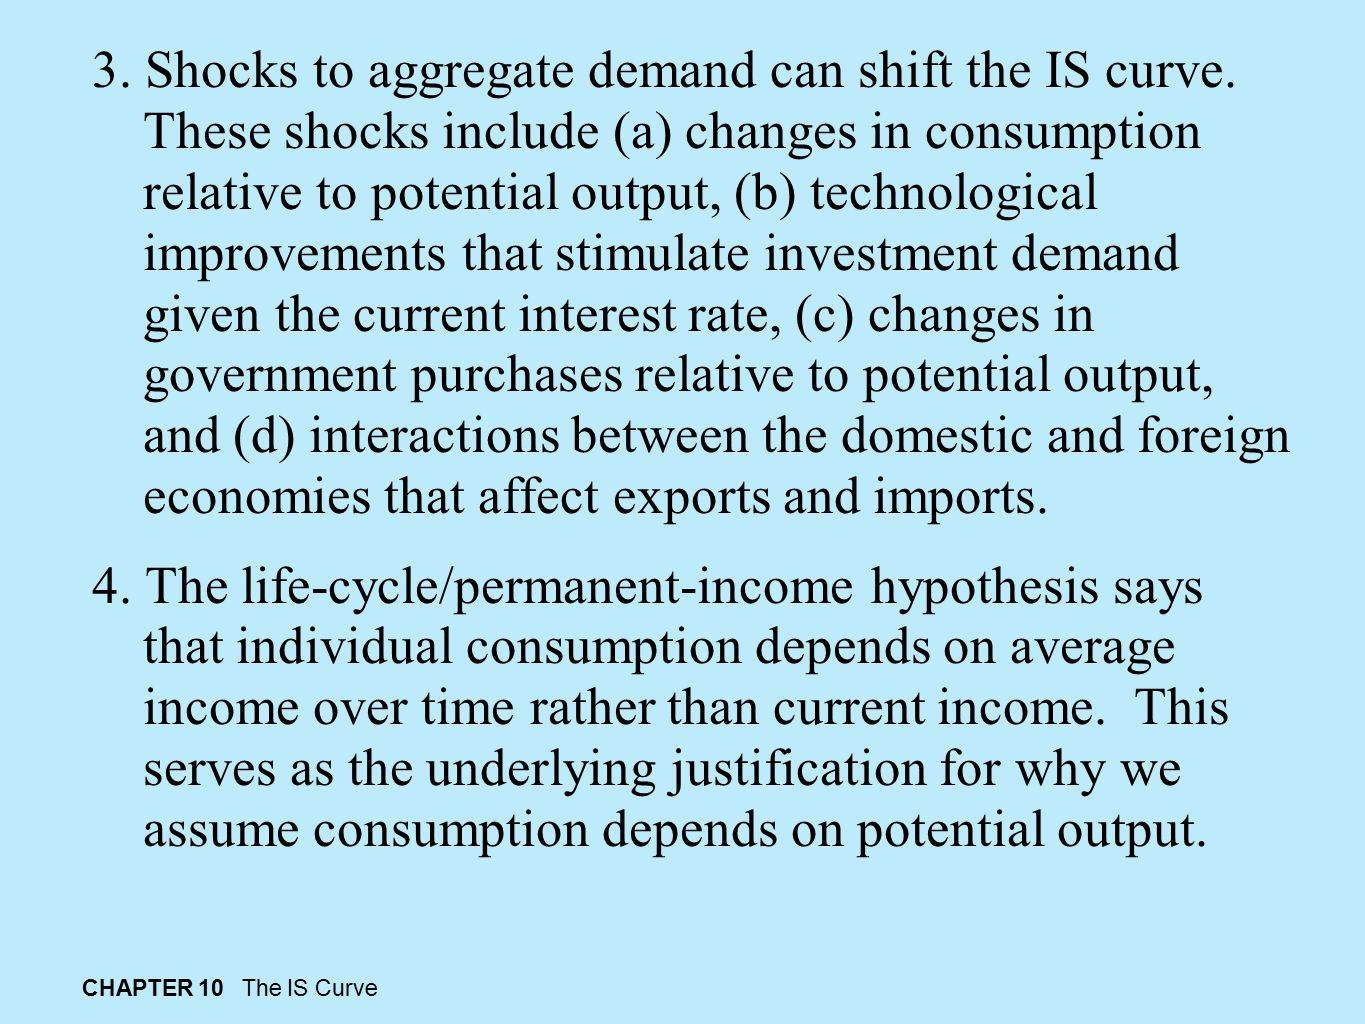 3. Shocks to aggregate demand can shift the IS curve